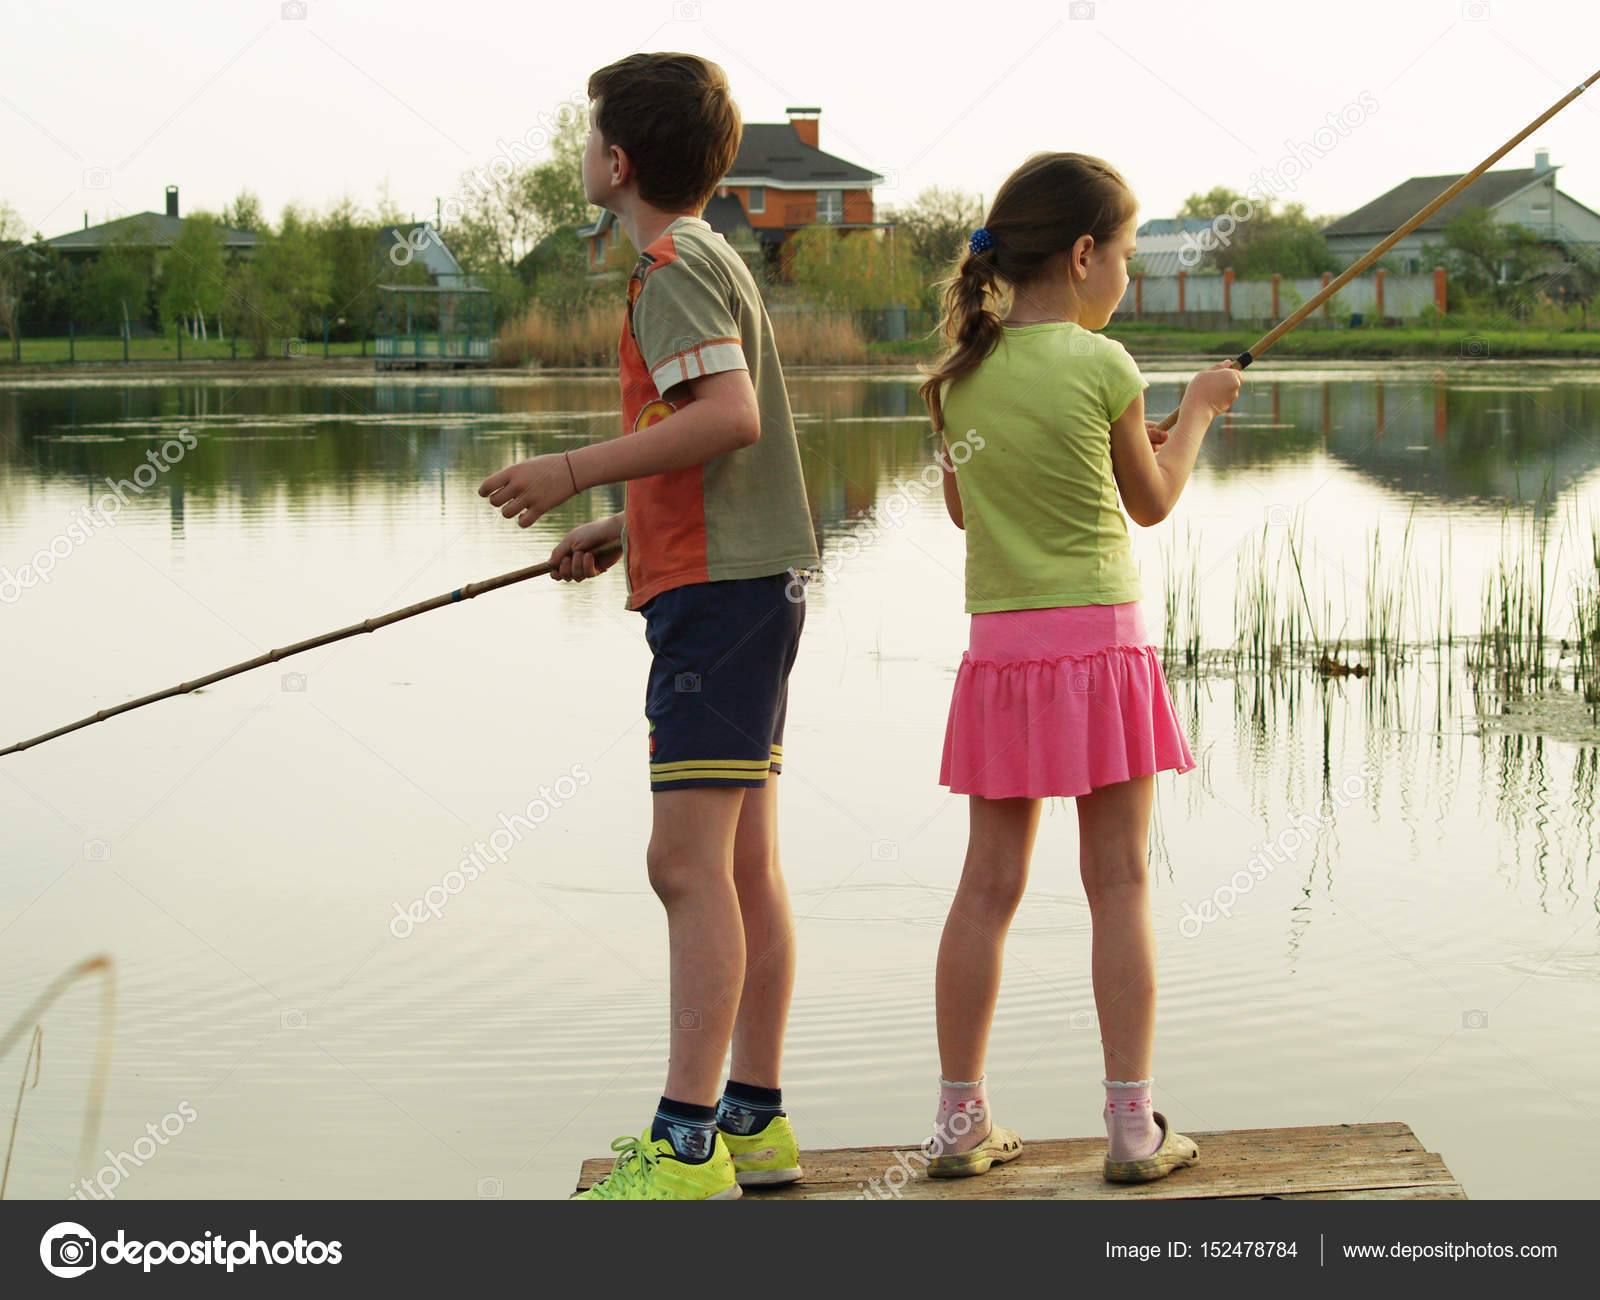 Children fishing on the river stock photo maxim1717 for Do kids need a fishing license